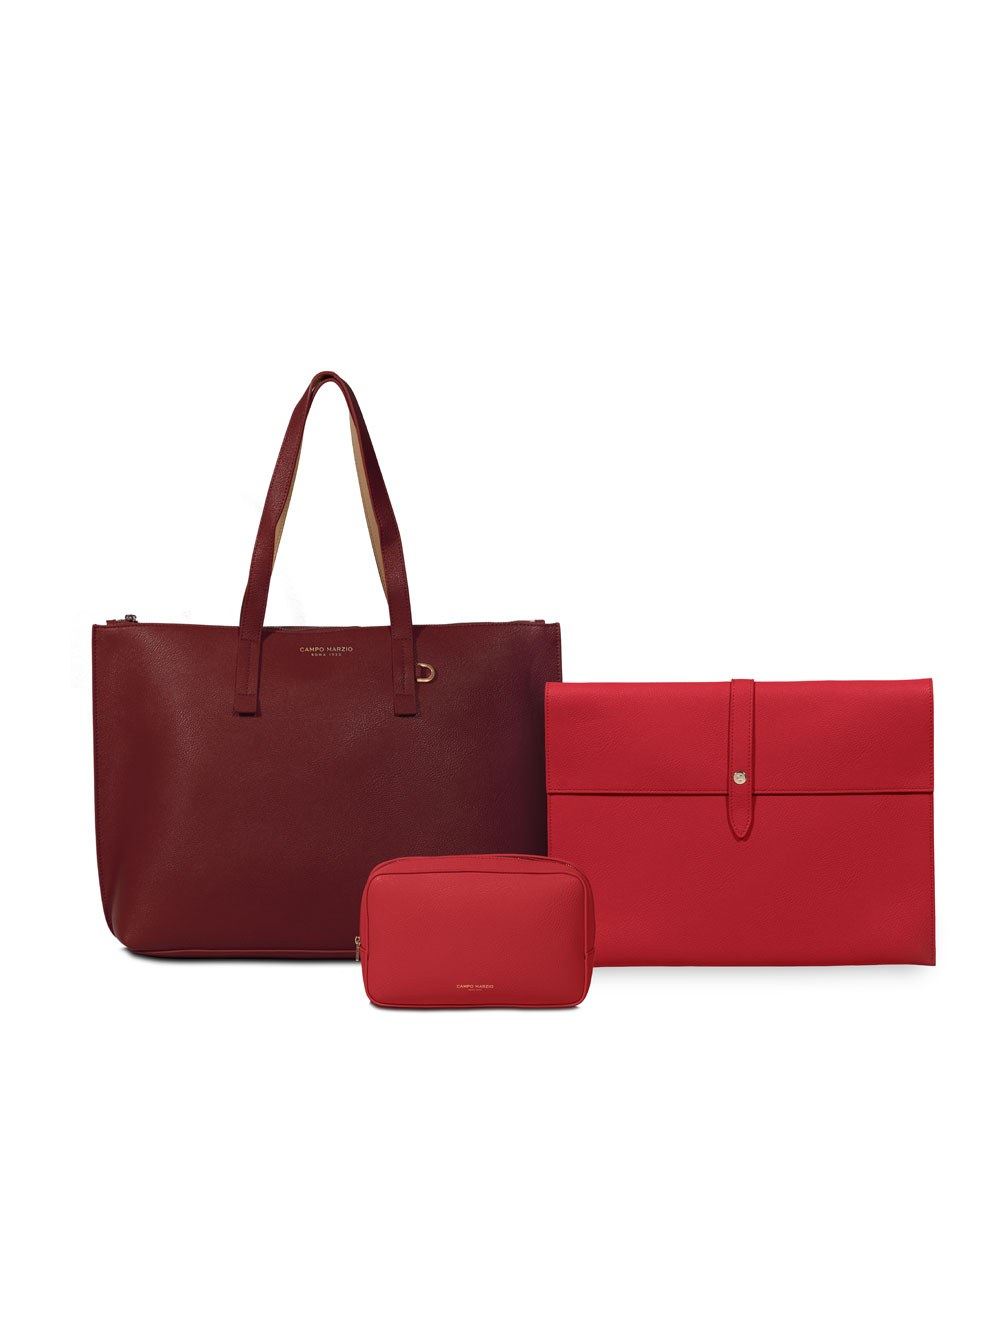 Tote Bag with Accessories (3 in 1)